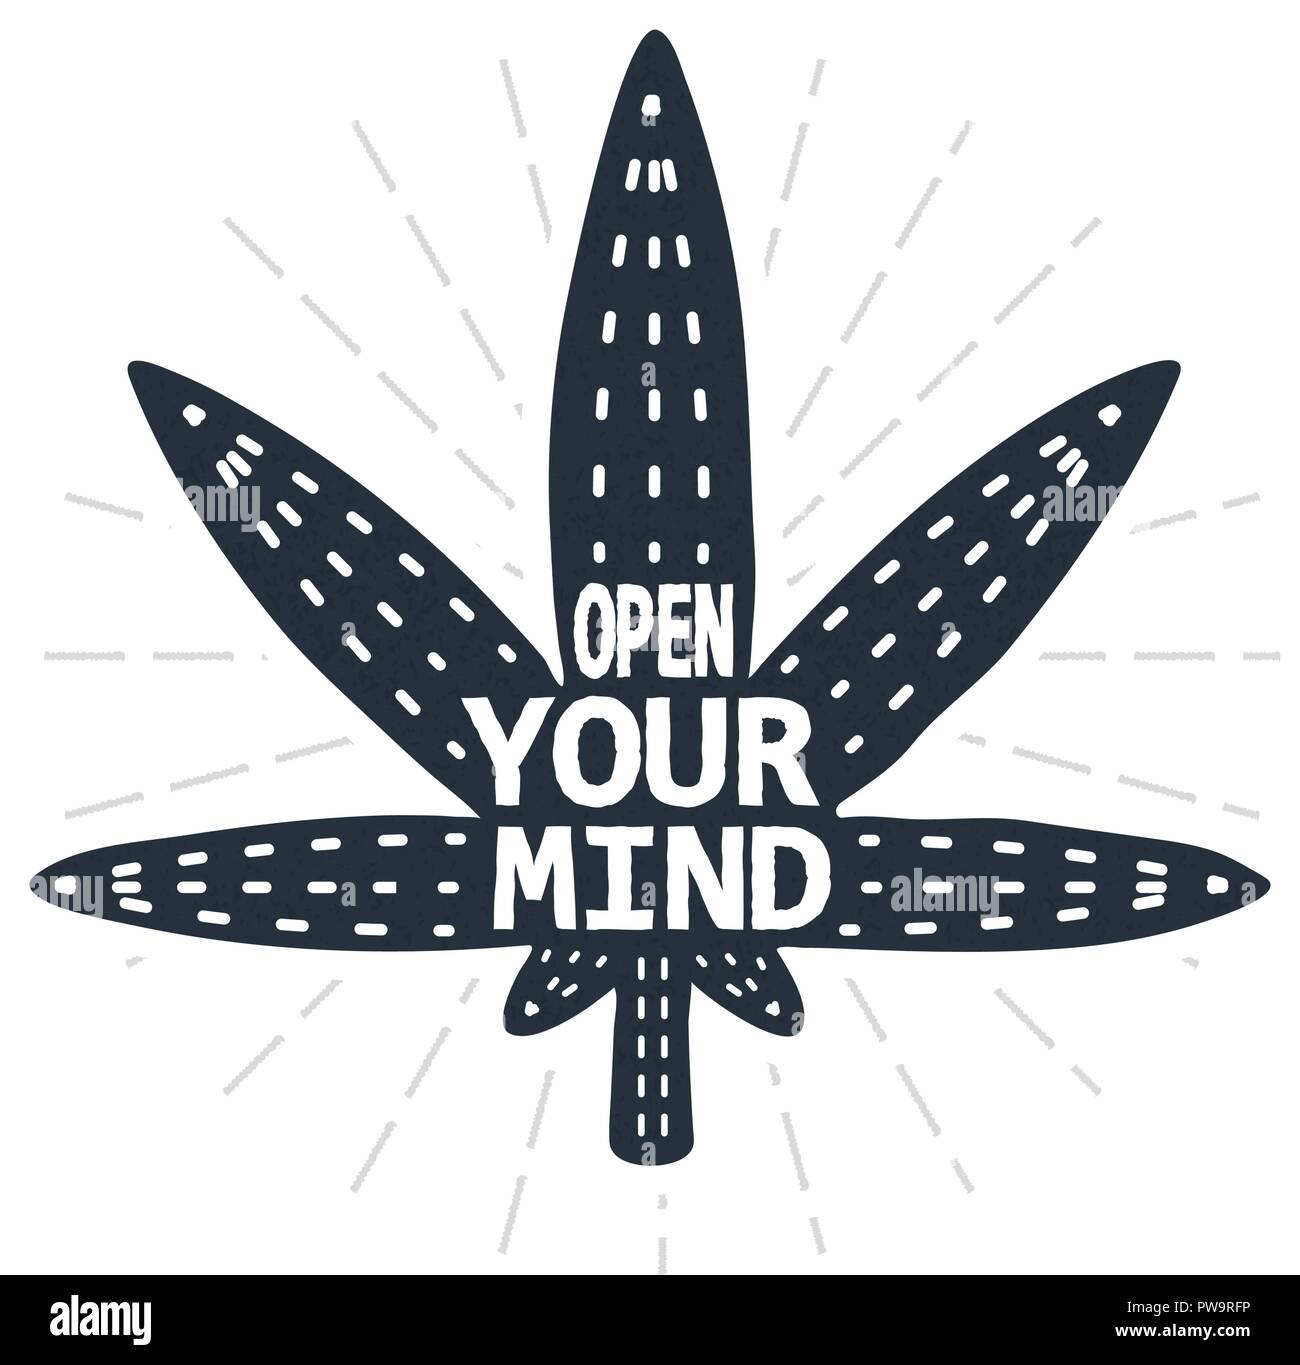 Open your mind - calligraphy lettering quote. Vector creative hemp, cannabis and marijuana typography poster. Use in greeting card or t-shirt print, home decoration design. - Stock Image